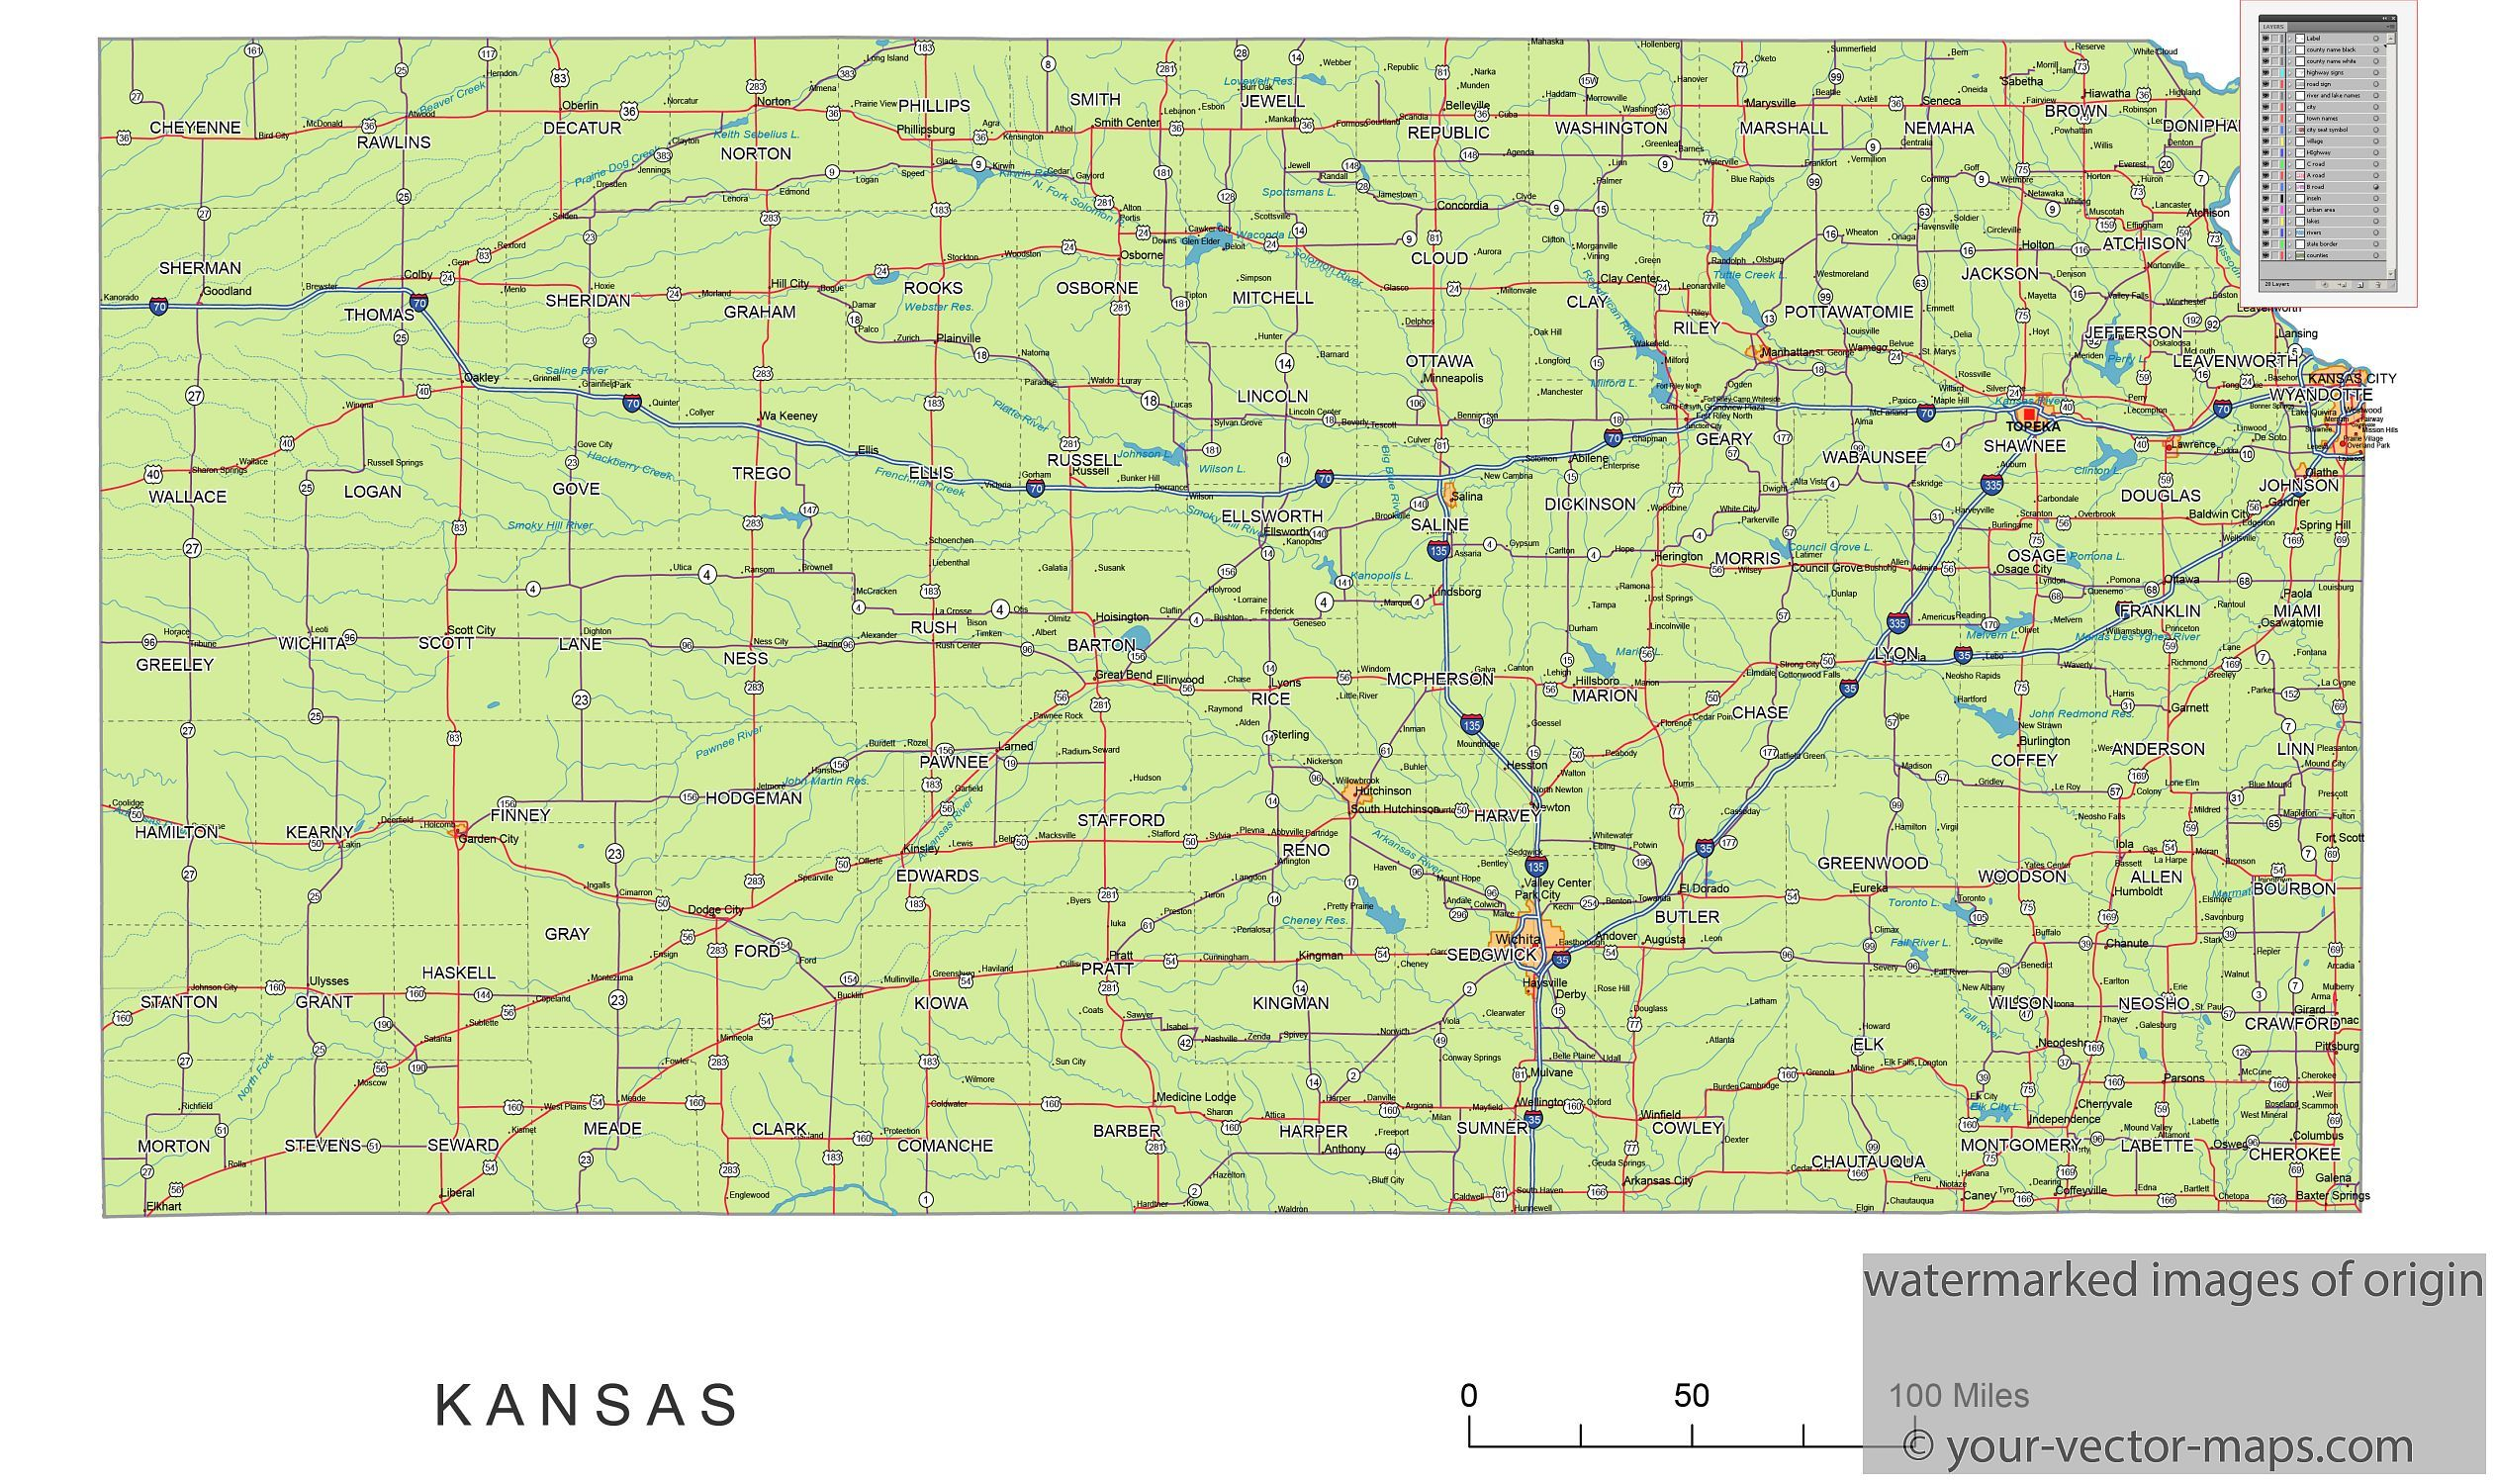 Kansas State Route Network Map Kansas Highways Map Cities Of - Kansas rivers map